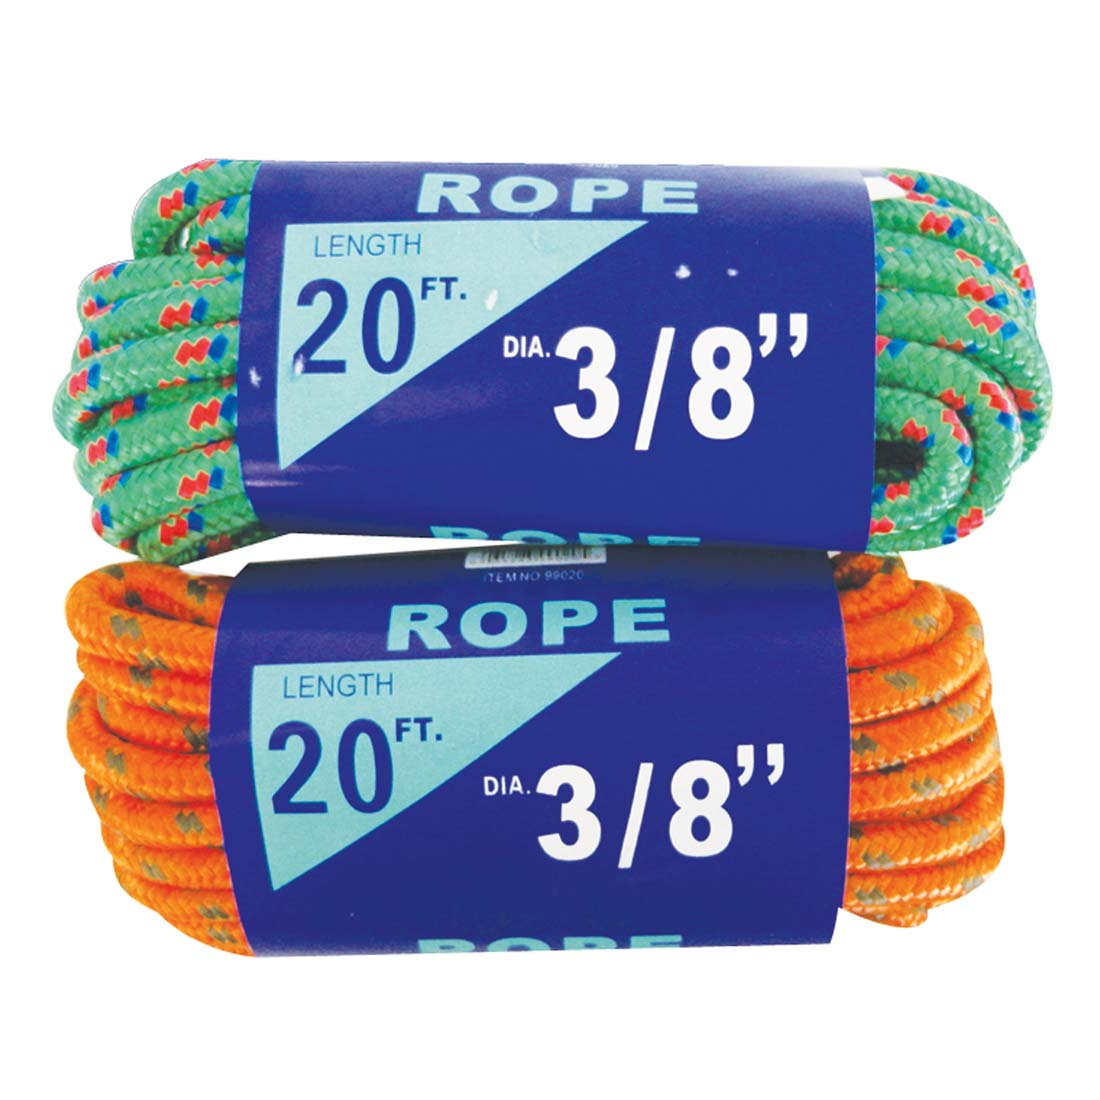 View ALL PURPOSE ROPE 20 FT 3/8 INCH IN DISPLAY ASSORTED COLORS